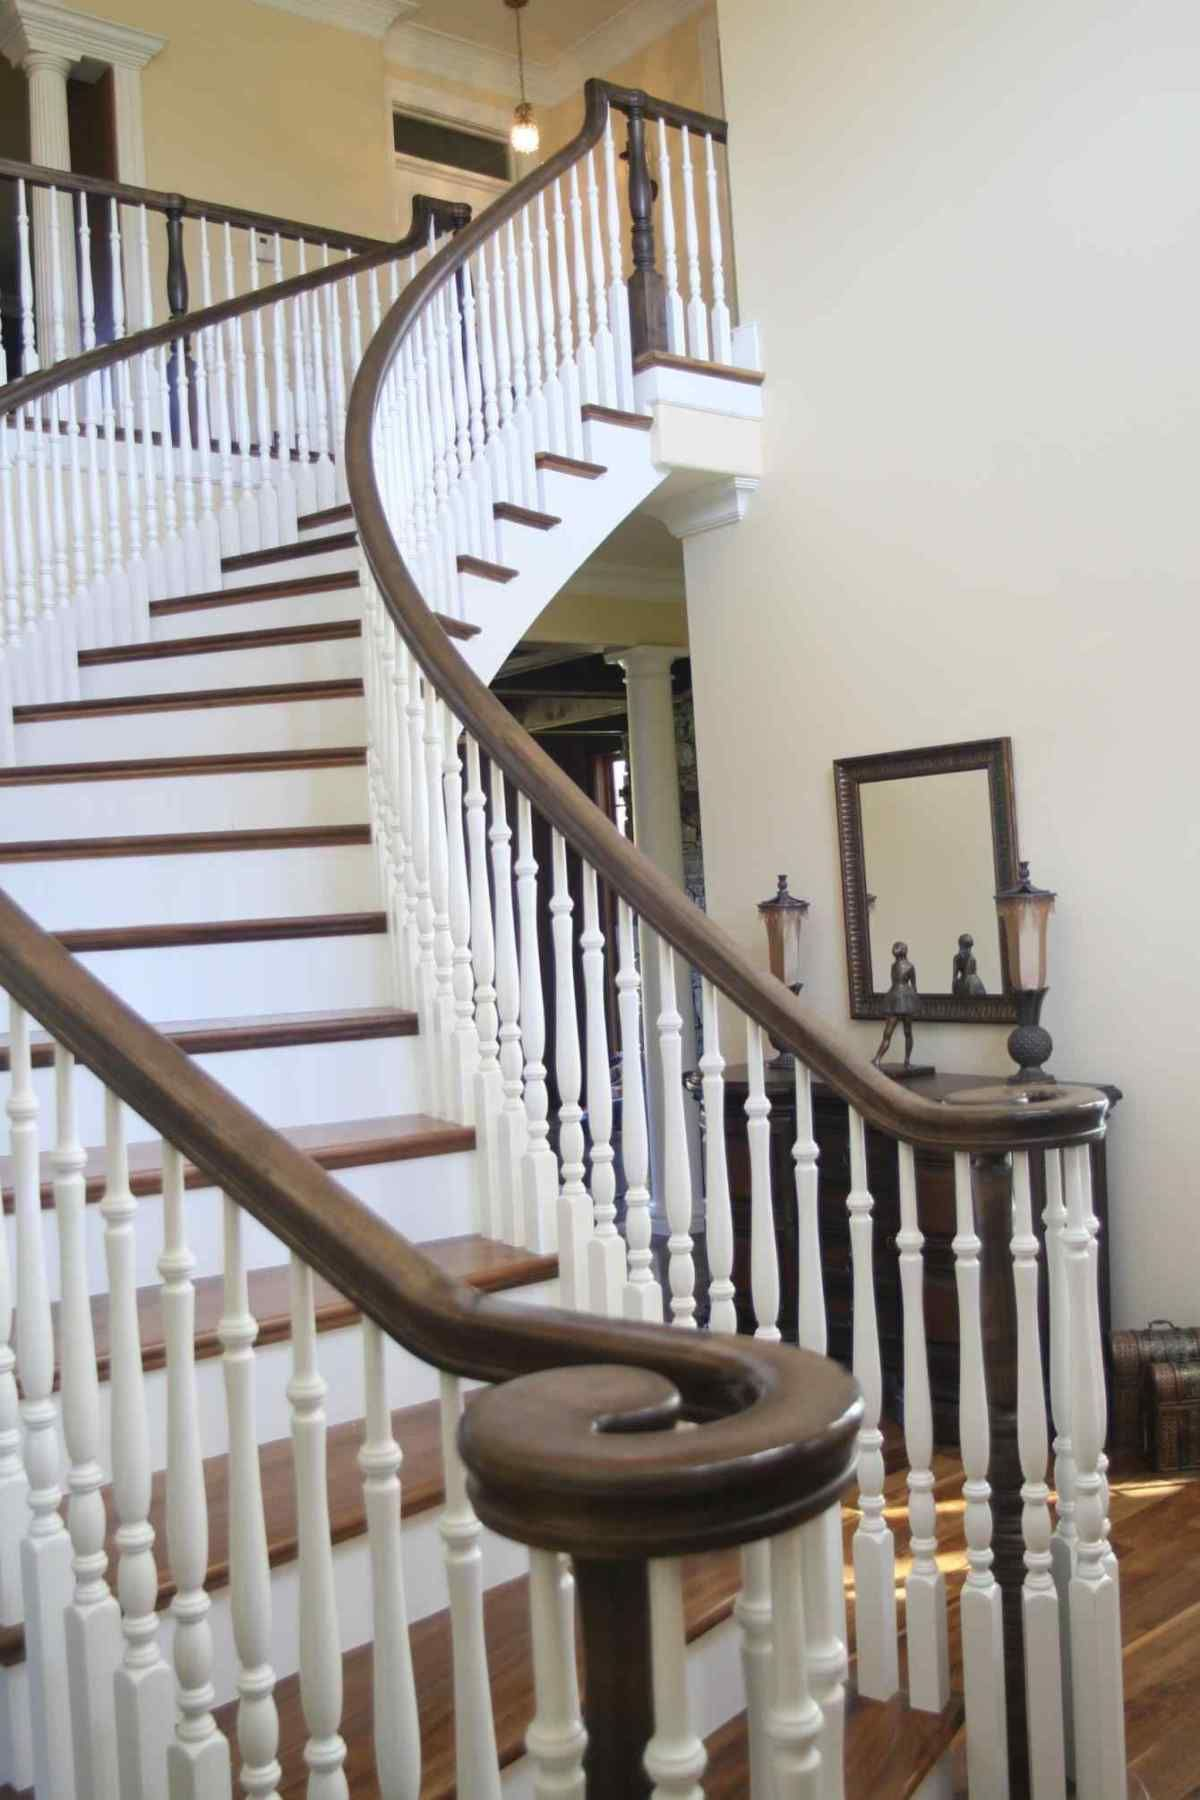 Luxury And Elegant Stairs And Rails Design For Luxurious Home Breakpr Stair Railing Design Spiral Staircase Kits Stairs Design Modern,Seattle Design Review